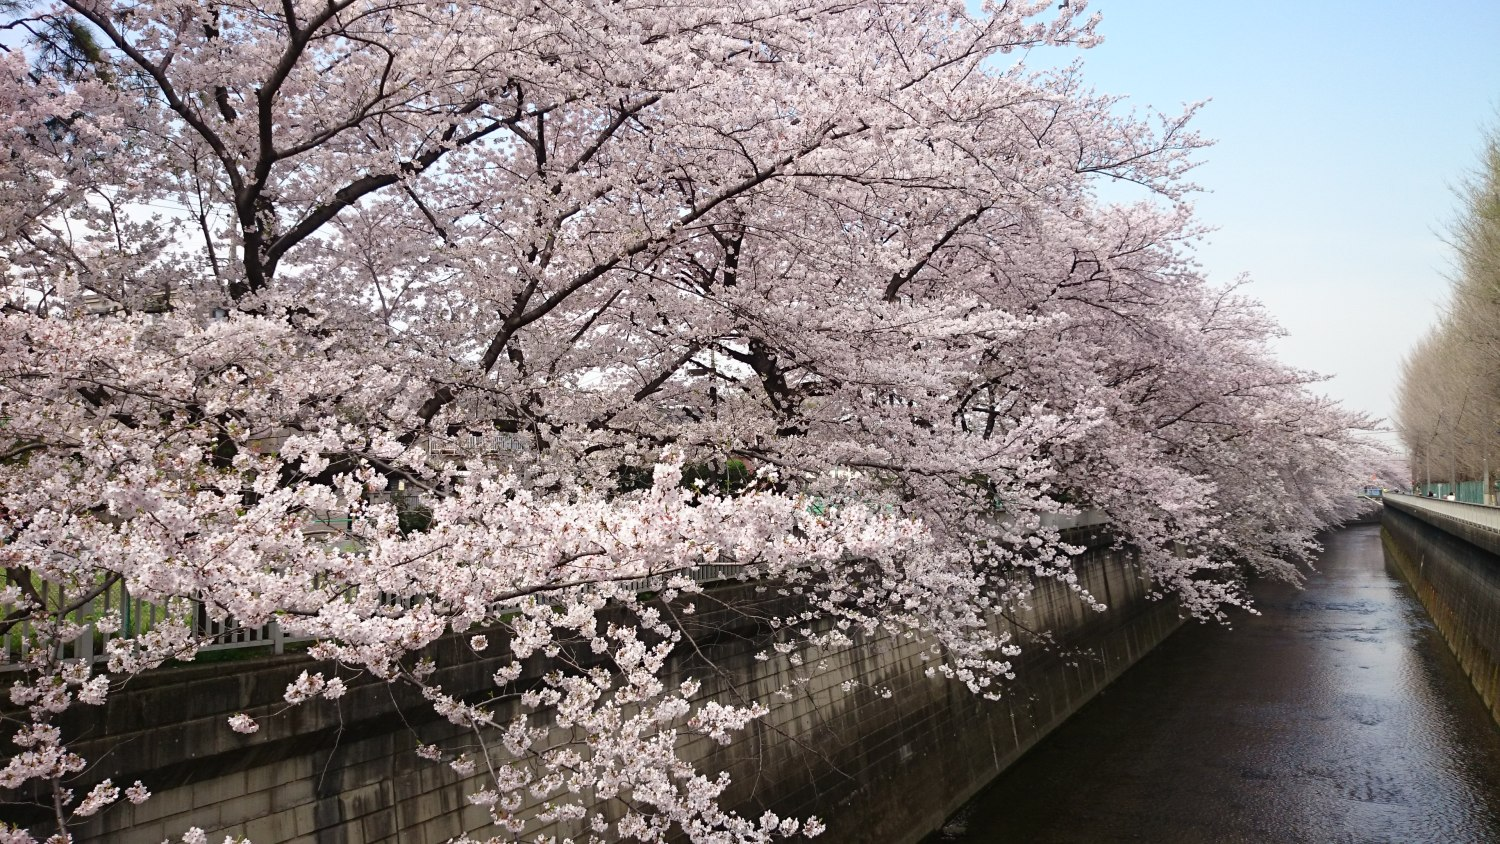 Cherry blossoms of the Shakujii River